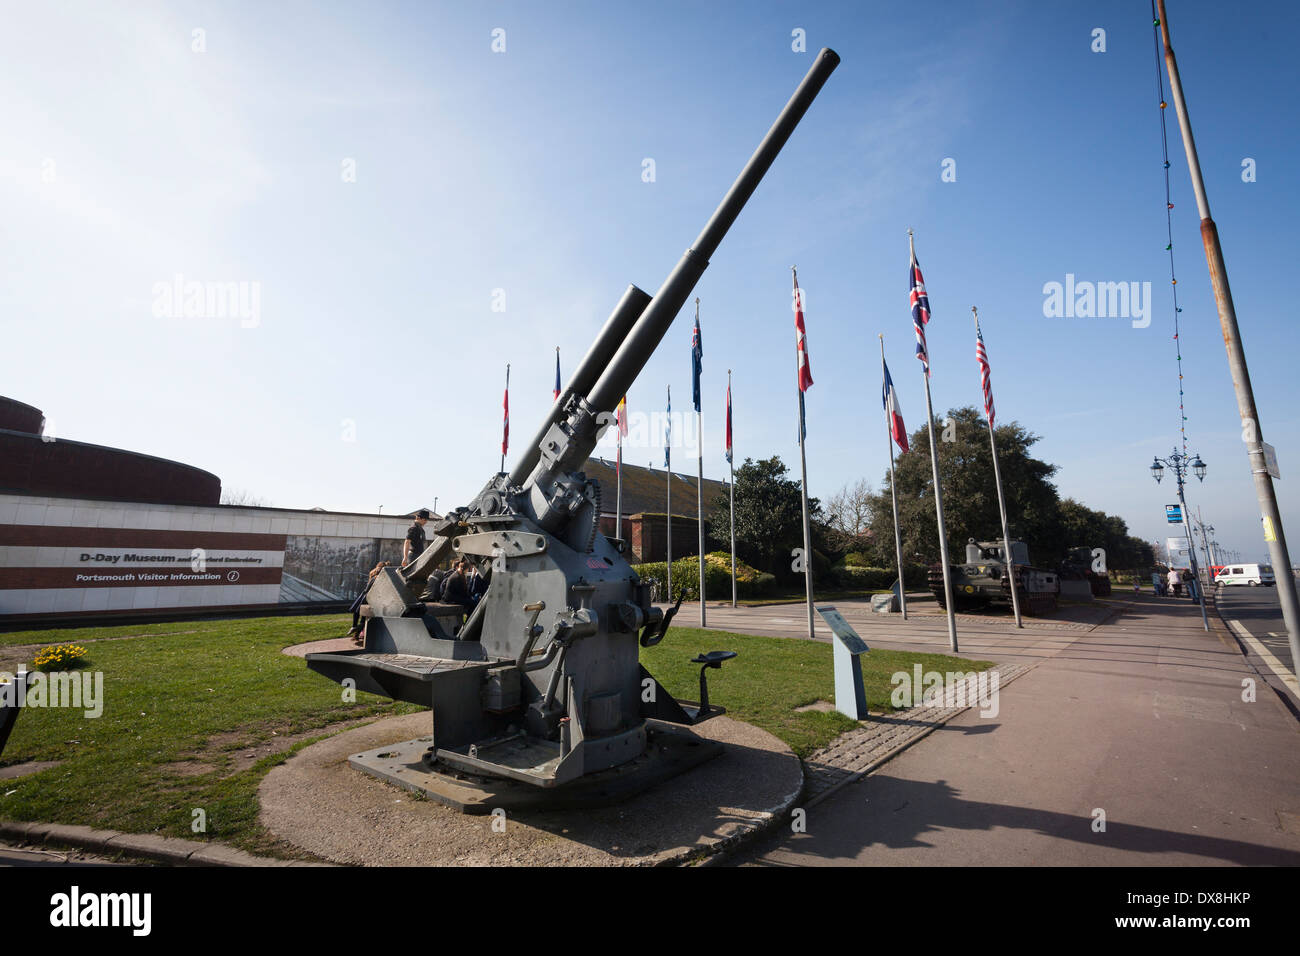 3.7 inch Mark II anti-aircraft cun on display outside the D-Day museum at Southsea. - Stock Image